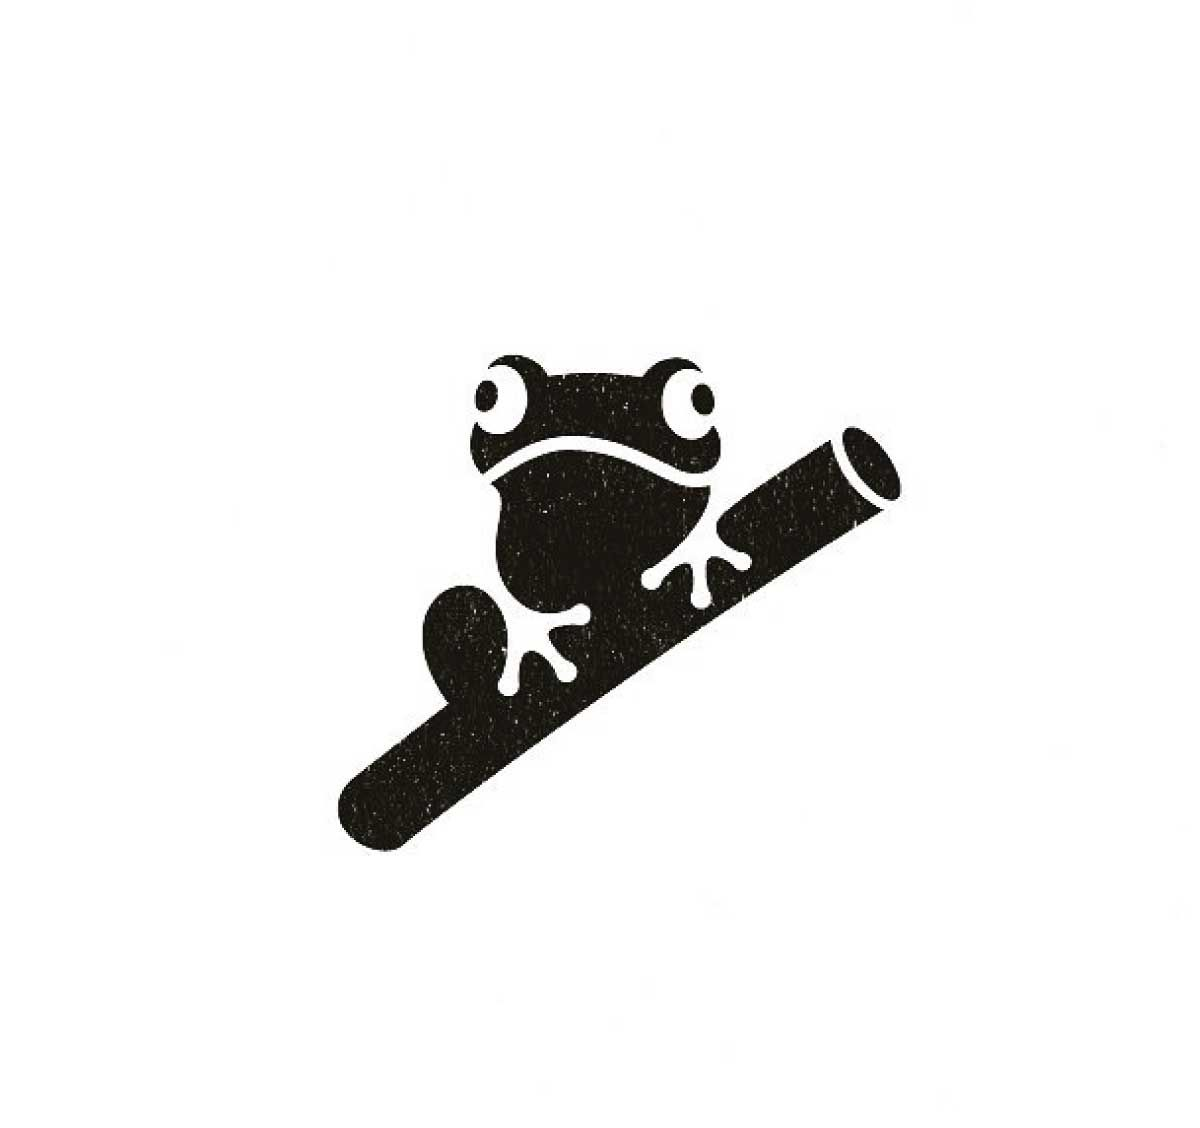 Frog bamboo creative animal negative space logo designs, Best modern minimal ill…